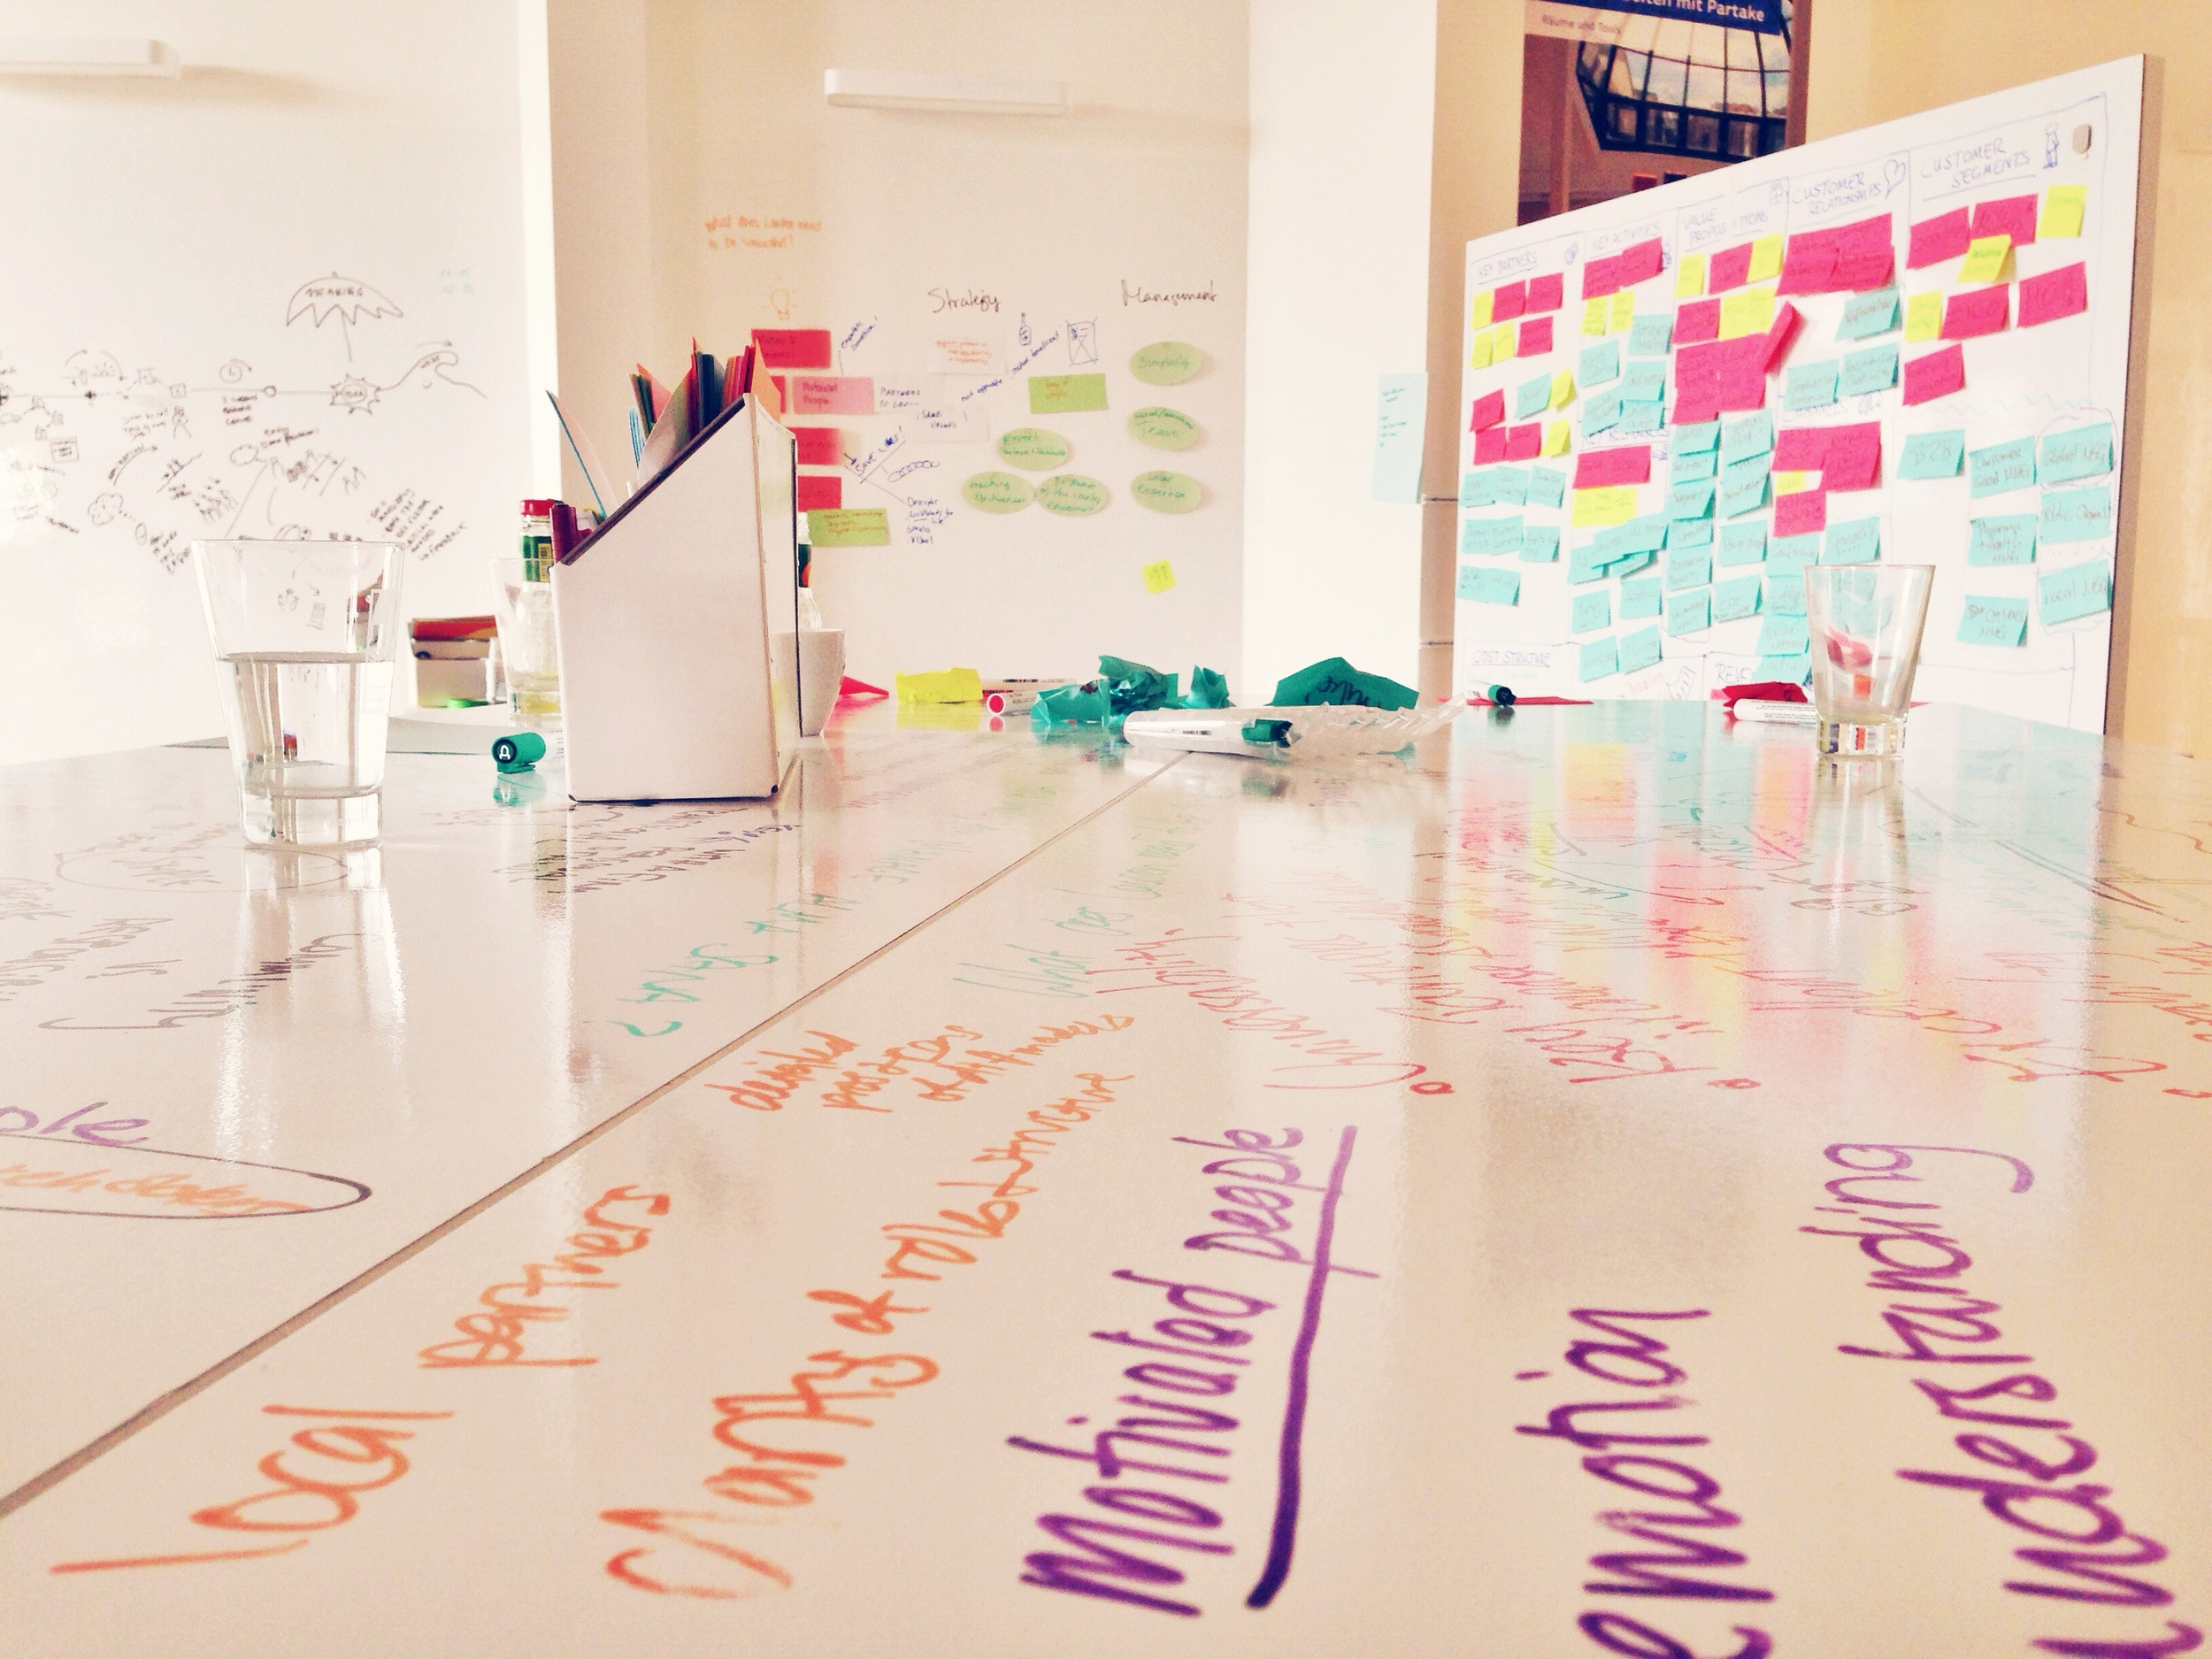 Just a few weeks left in our partnership with 180 Degrees Consulting Berlin ! We're excited to see what ideas they've come up with for us.     Photo taken: July 28, 2014.